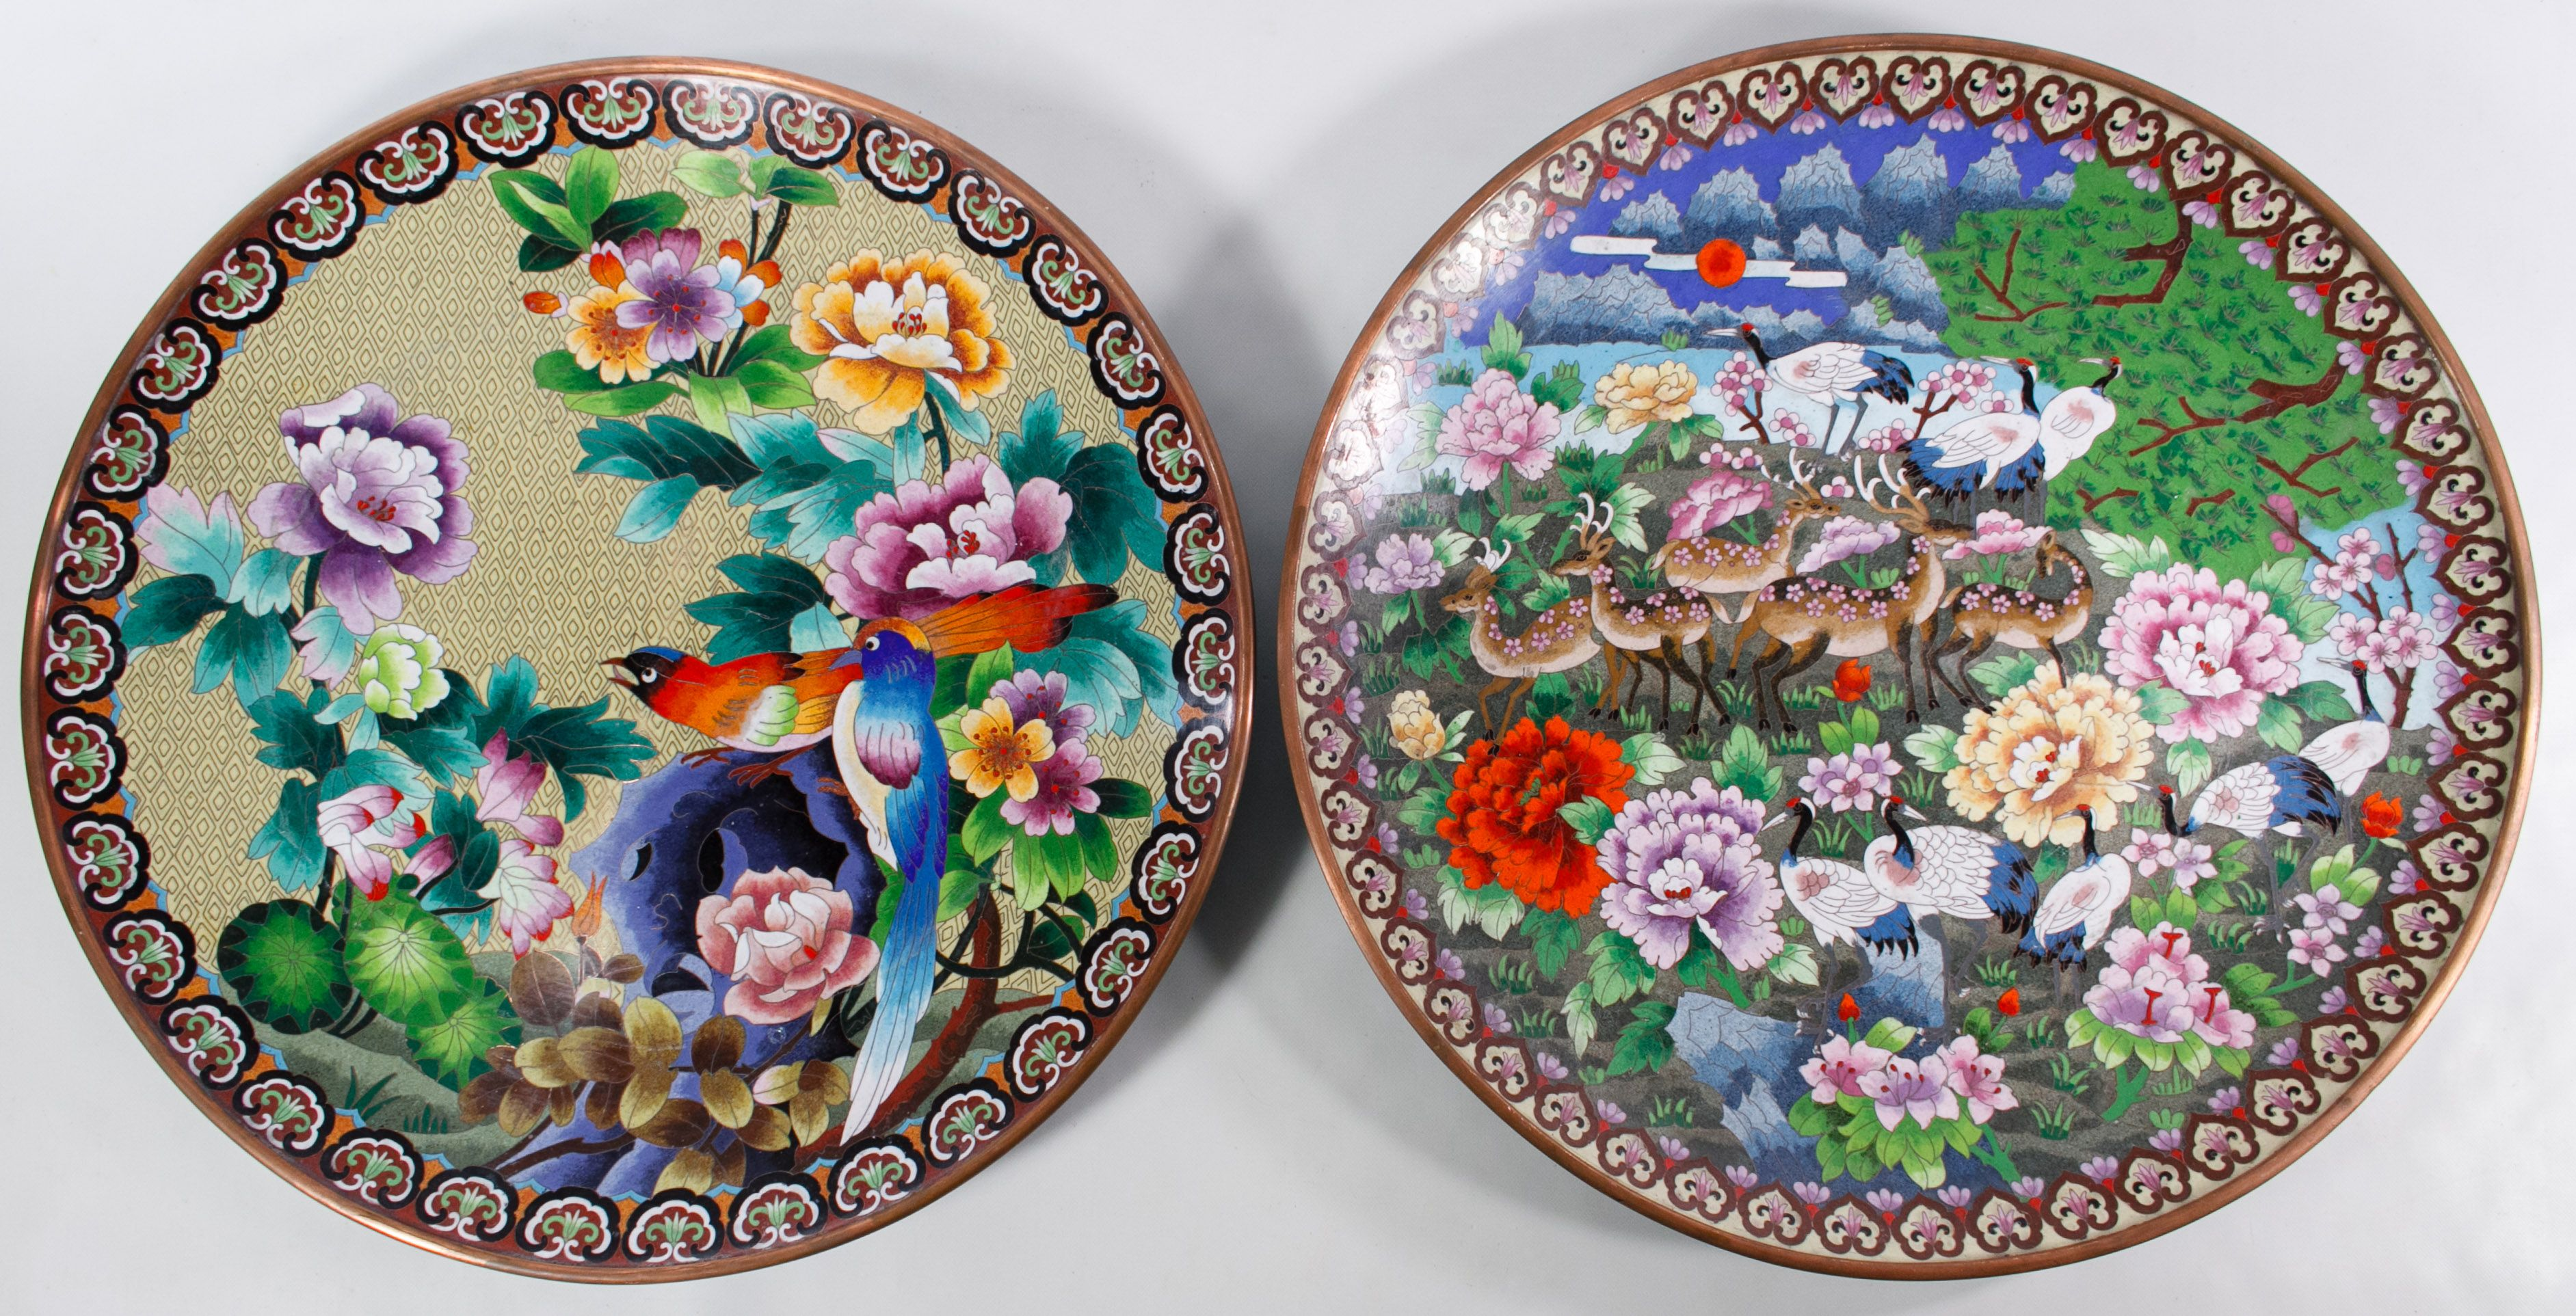 Lot 550: Asian Cloisonne Chargers; Two copper lined large round plates with animal, bird and floral decoration